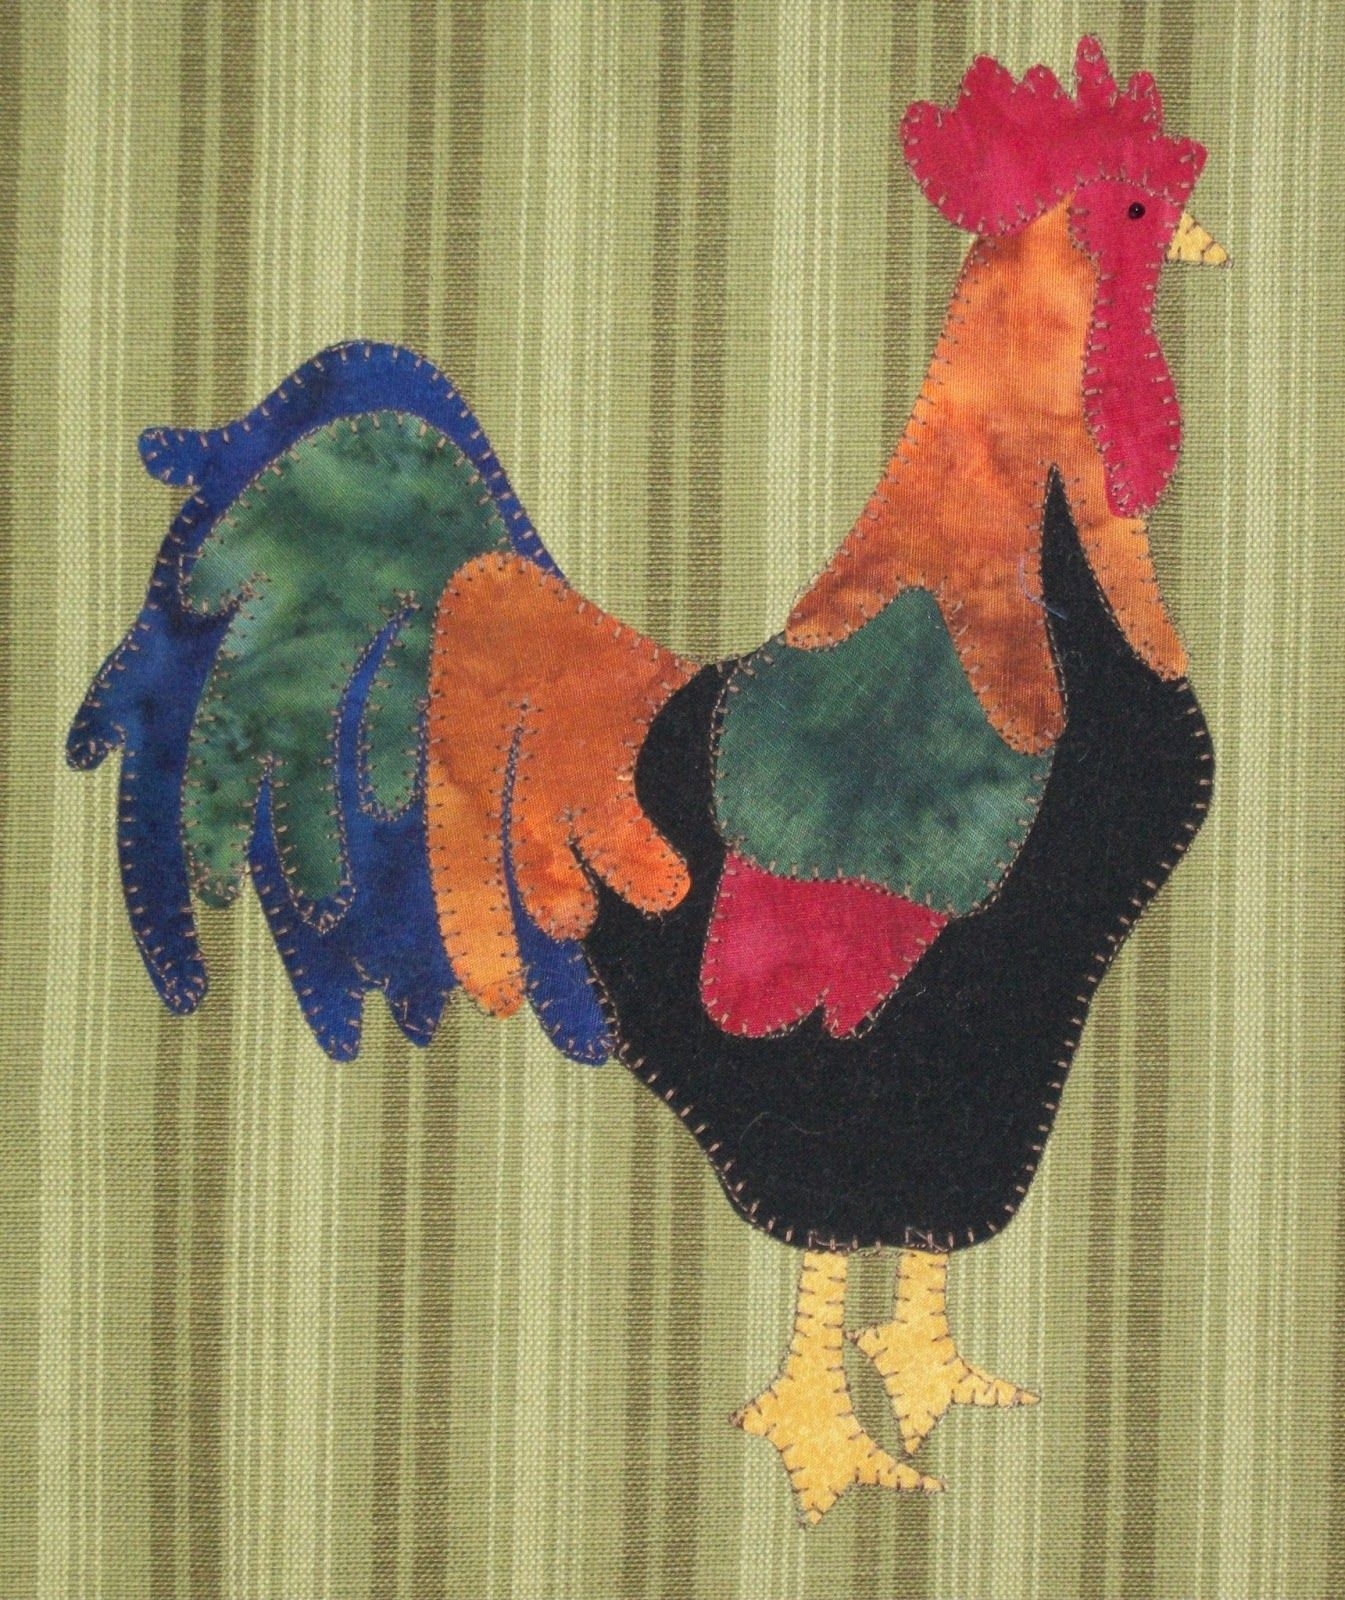 Quilt Doodle Doodles...: A Rooster, Puppy and Kitty Cat   sewing ... : rooster quilt pattern - Adamdwight.com